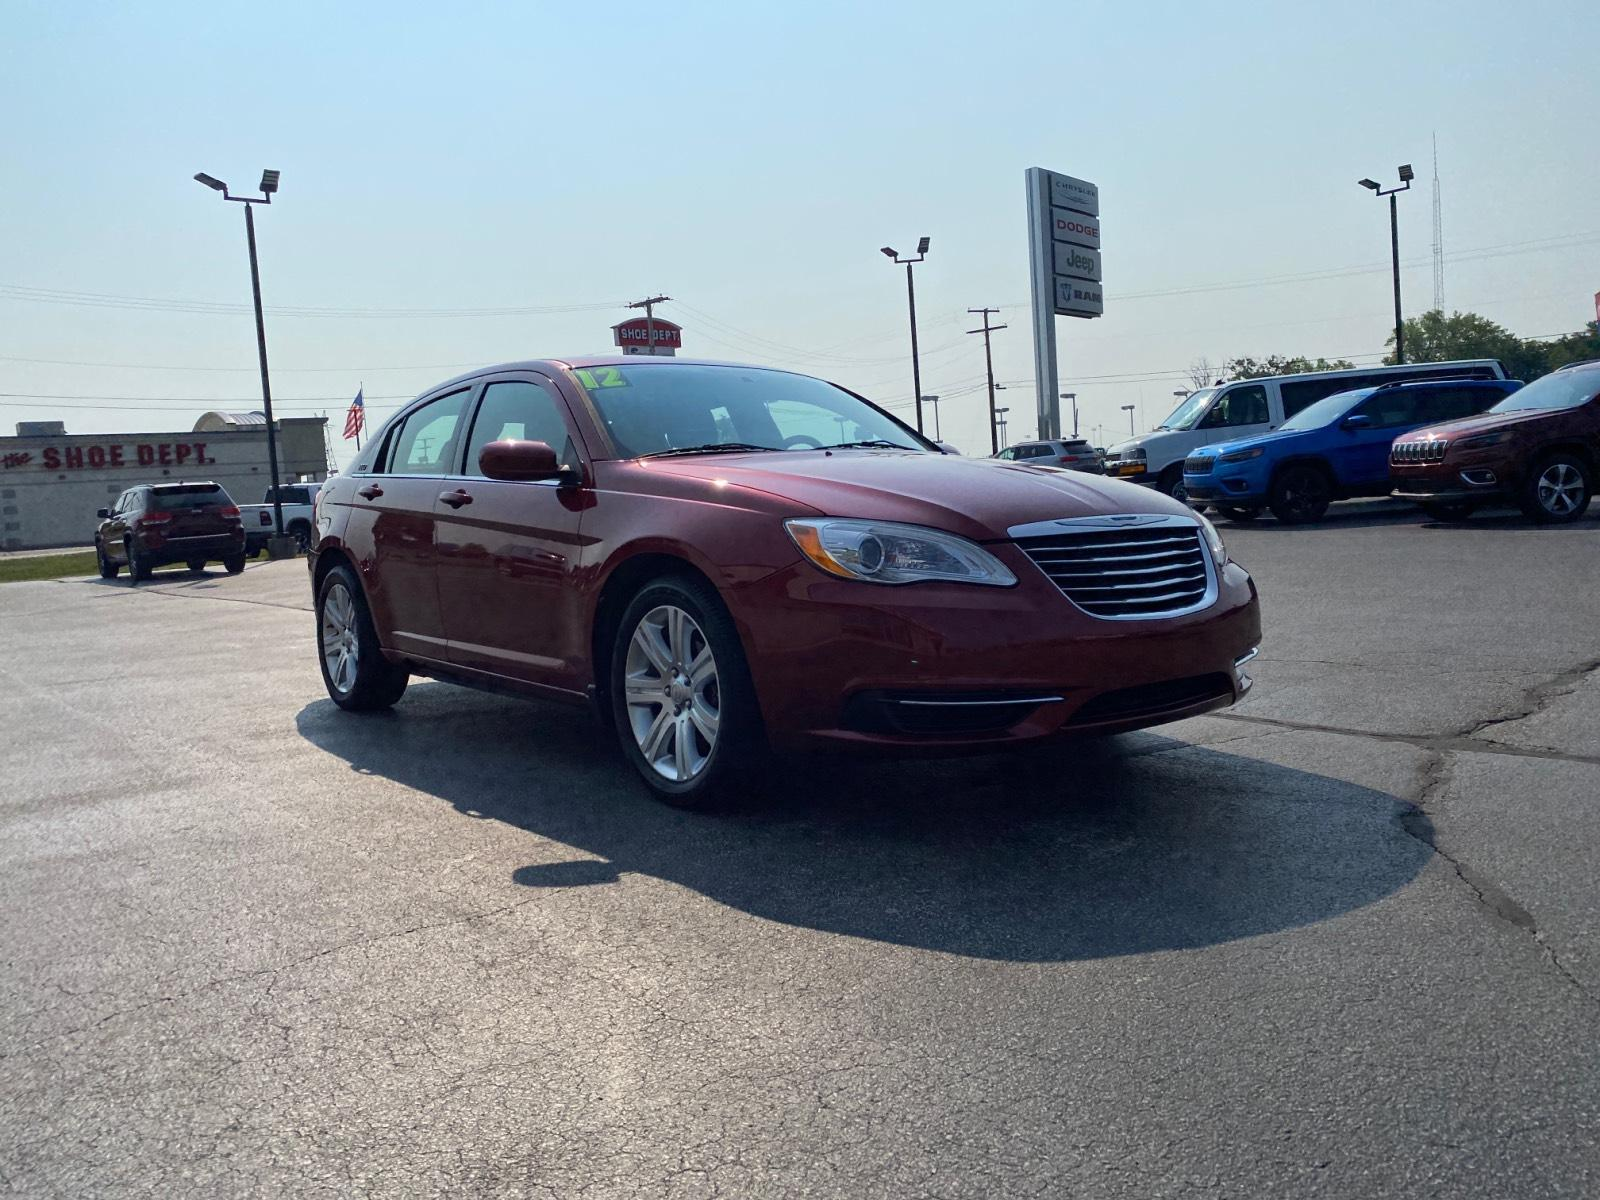 Pre-Owned 2012 Chrysler 200 4dr Sdn Touring